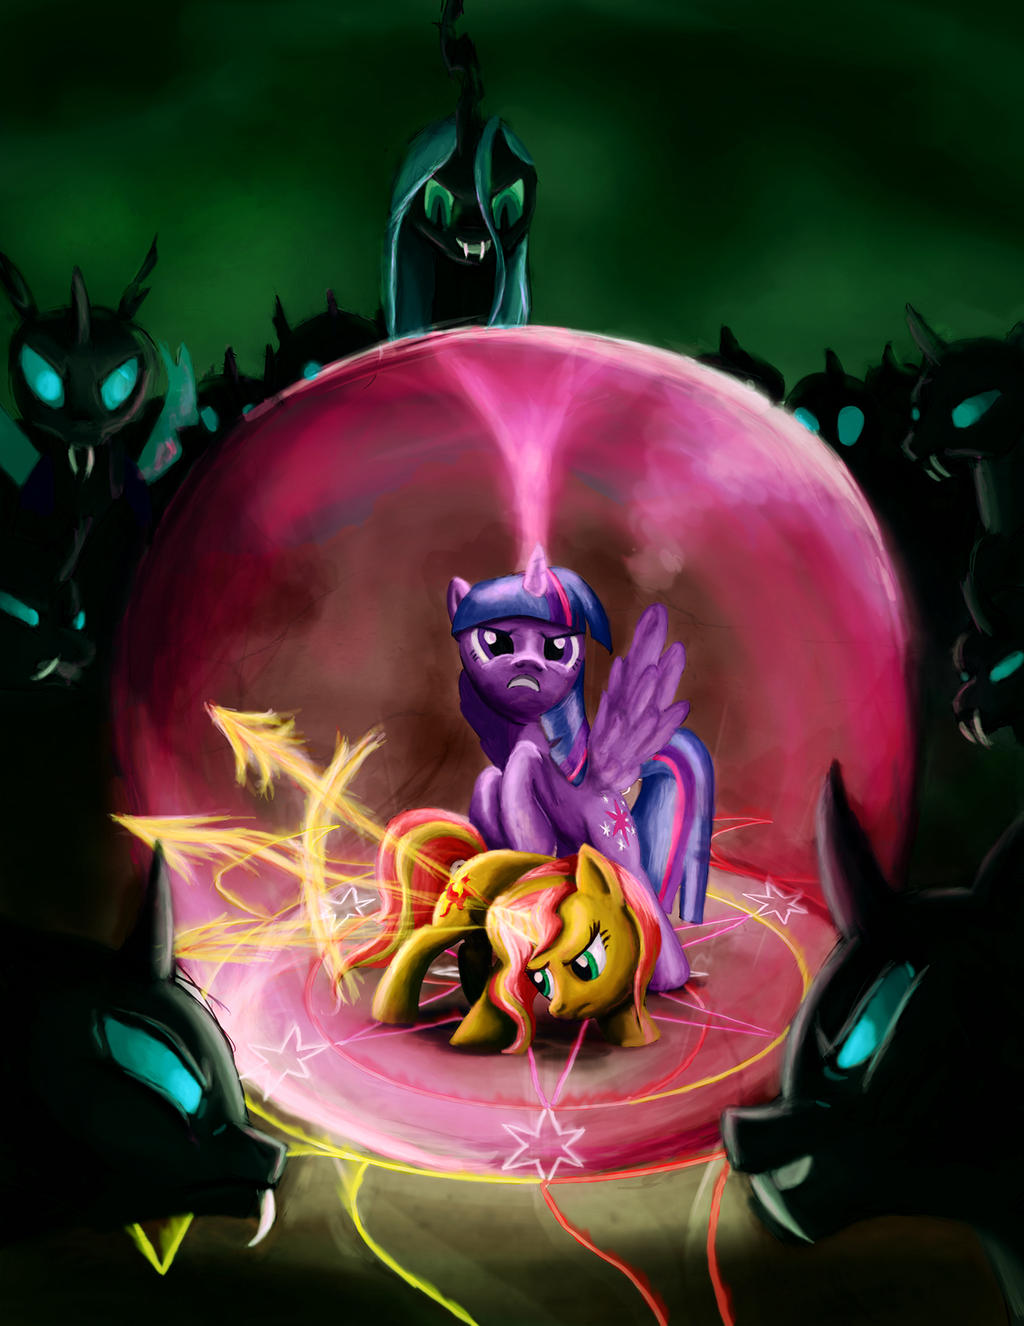 Twilght and Sunset vs. the Changelings by Fox-Moonglow on DeviantArt: fox-moonglow.deviantart.com/art/Twilght-and-Sunset-vs-the...